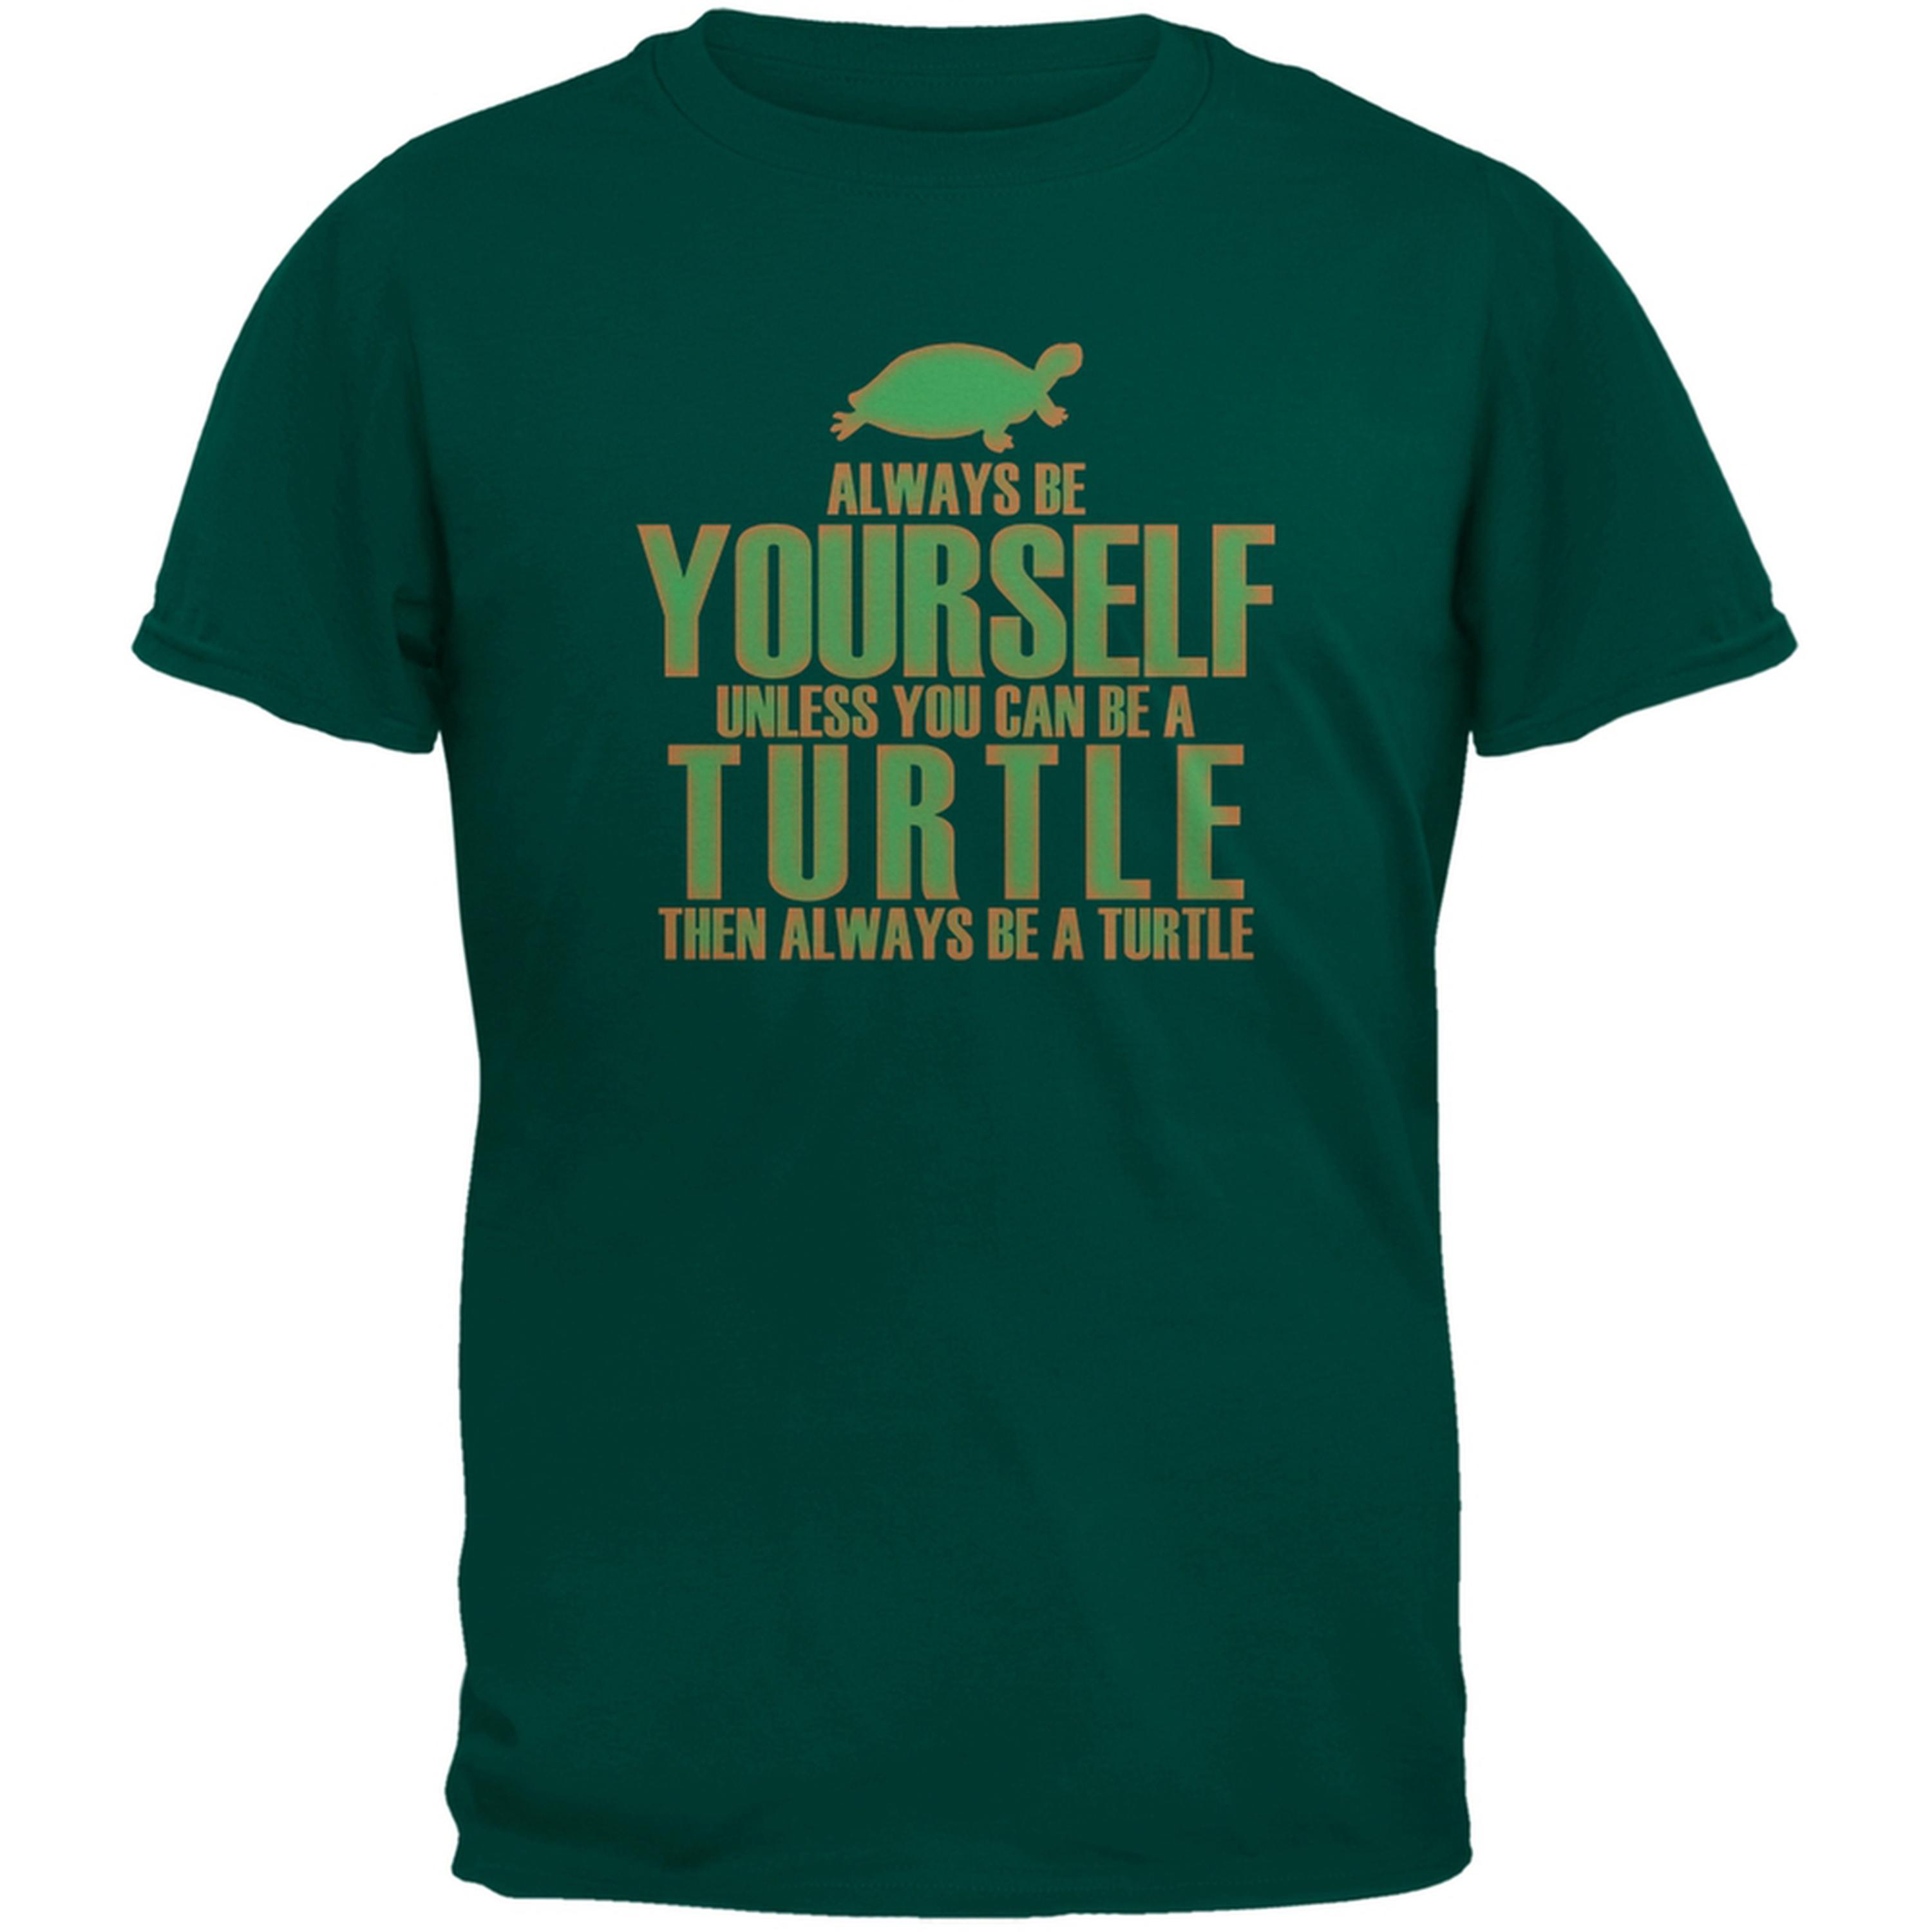 Always Be Yourself Turtle Green Adult T-Shirt